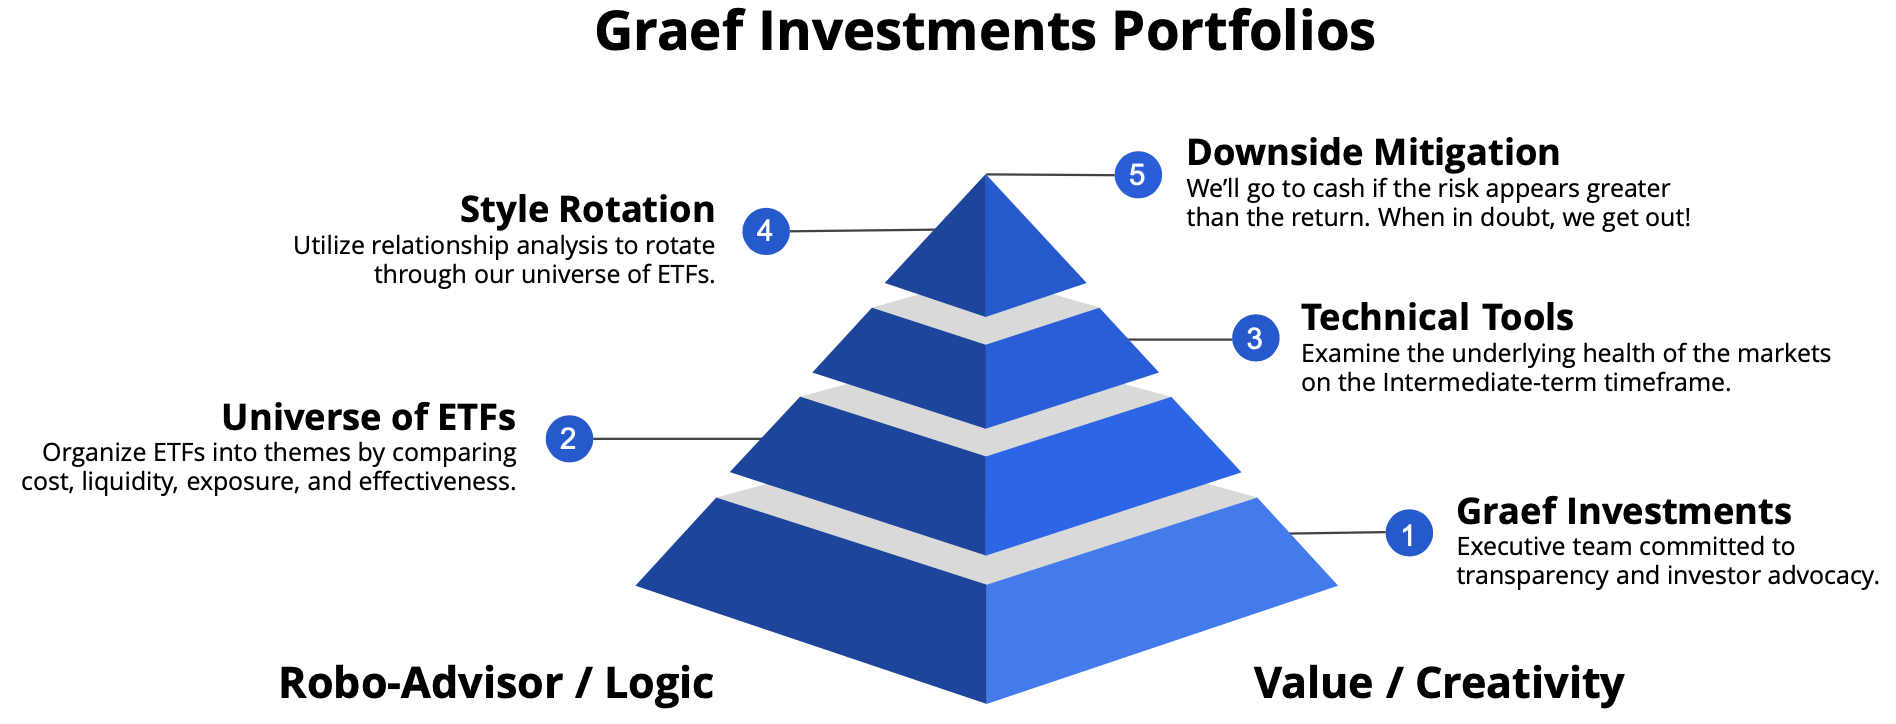 Graef Investments Strategy